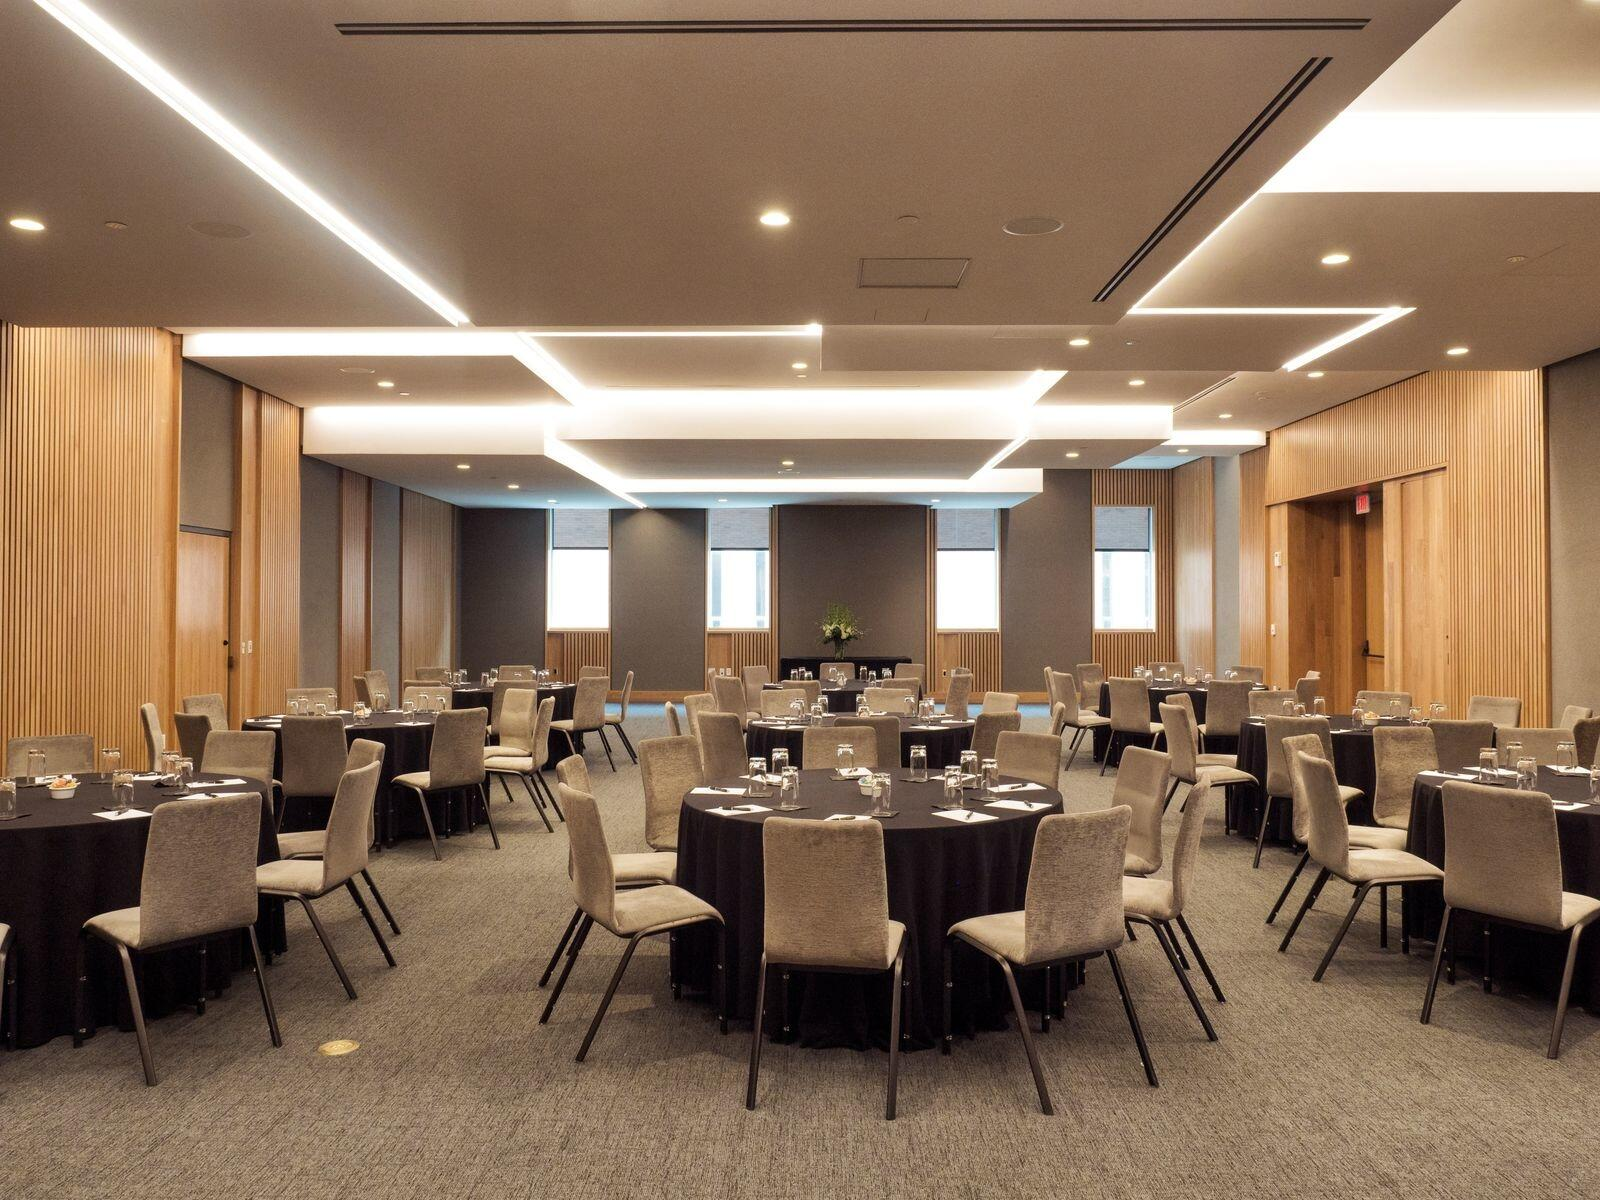 Meeting space with banquet round tables